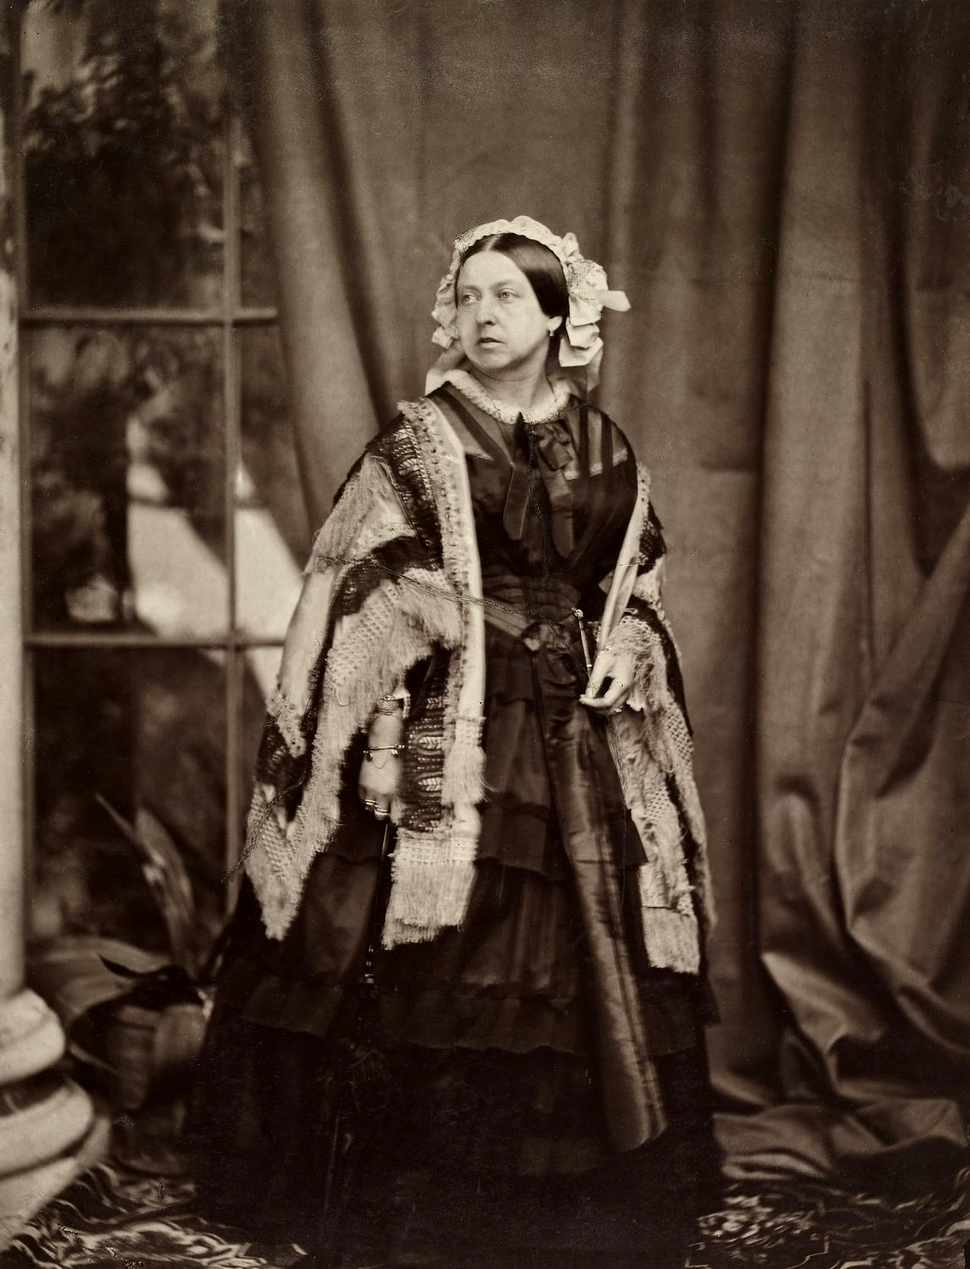 Queen Victoria by JJE Mayall, 1860